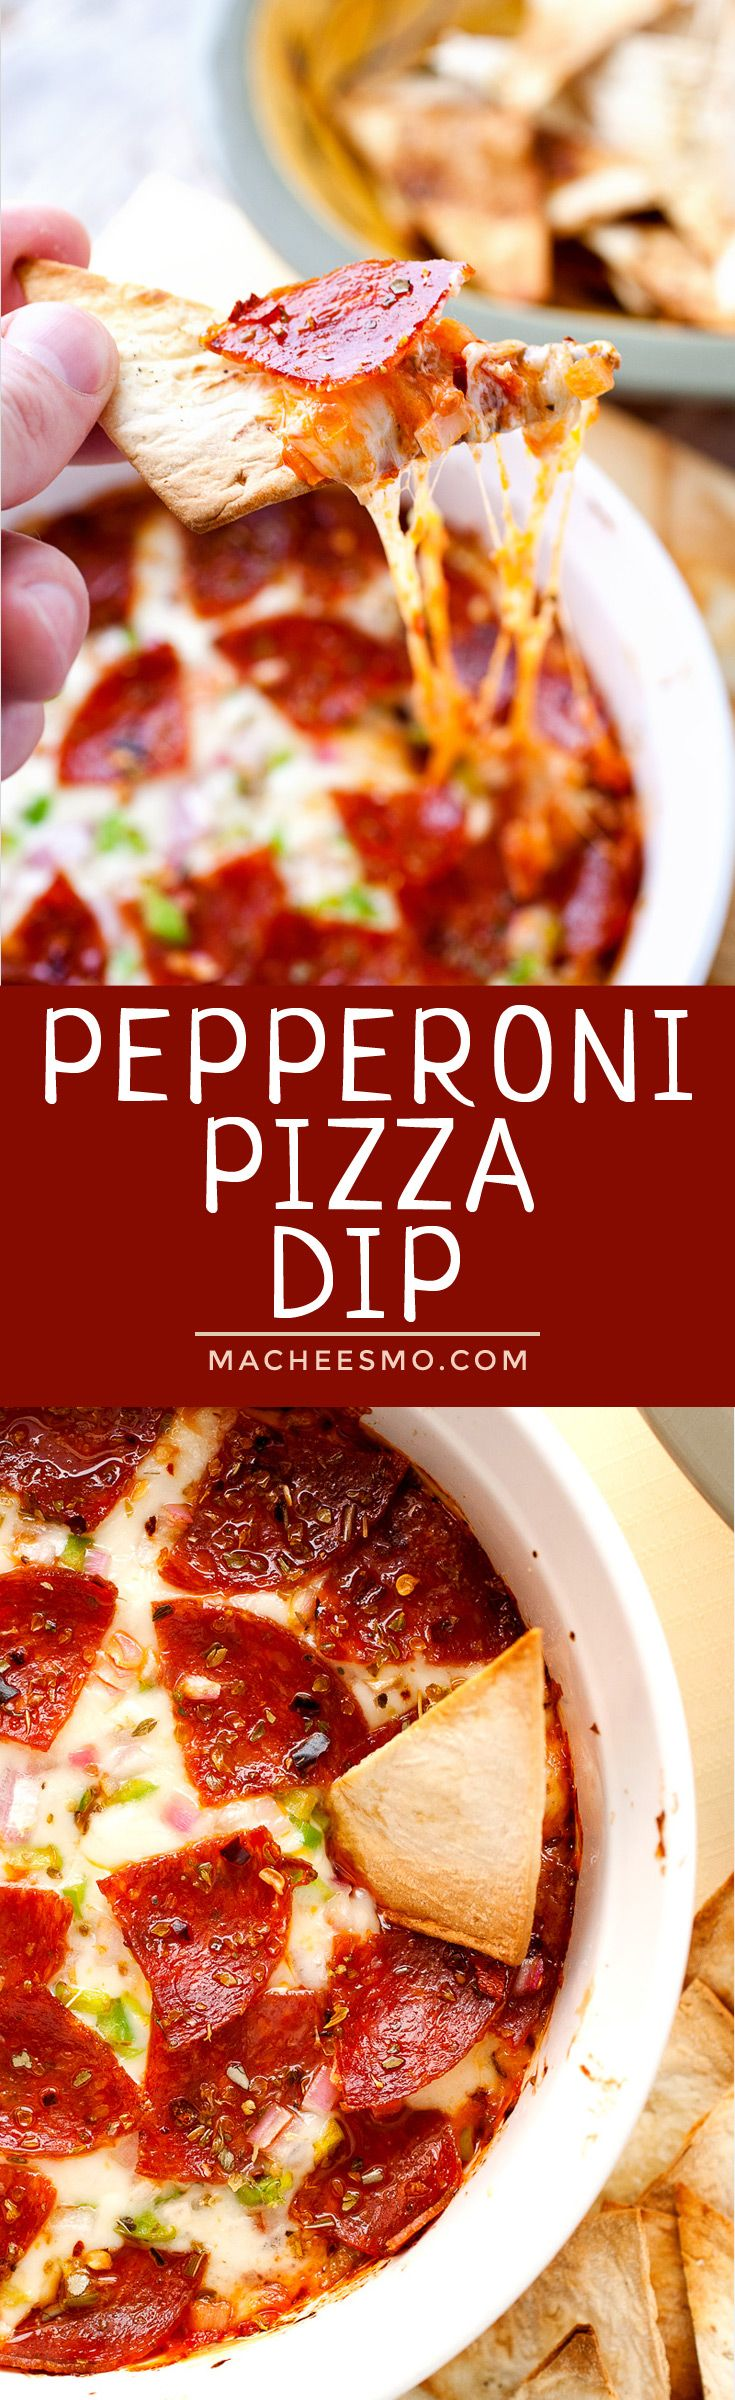 Pepperoni Pizza Dip: This dip is easy to toss together and tastes JUST like pepperoni pizza! I like to serve mine with baked Flatbread Pizza Chips (sponsored)! | macheesmo.com